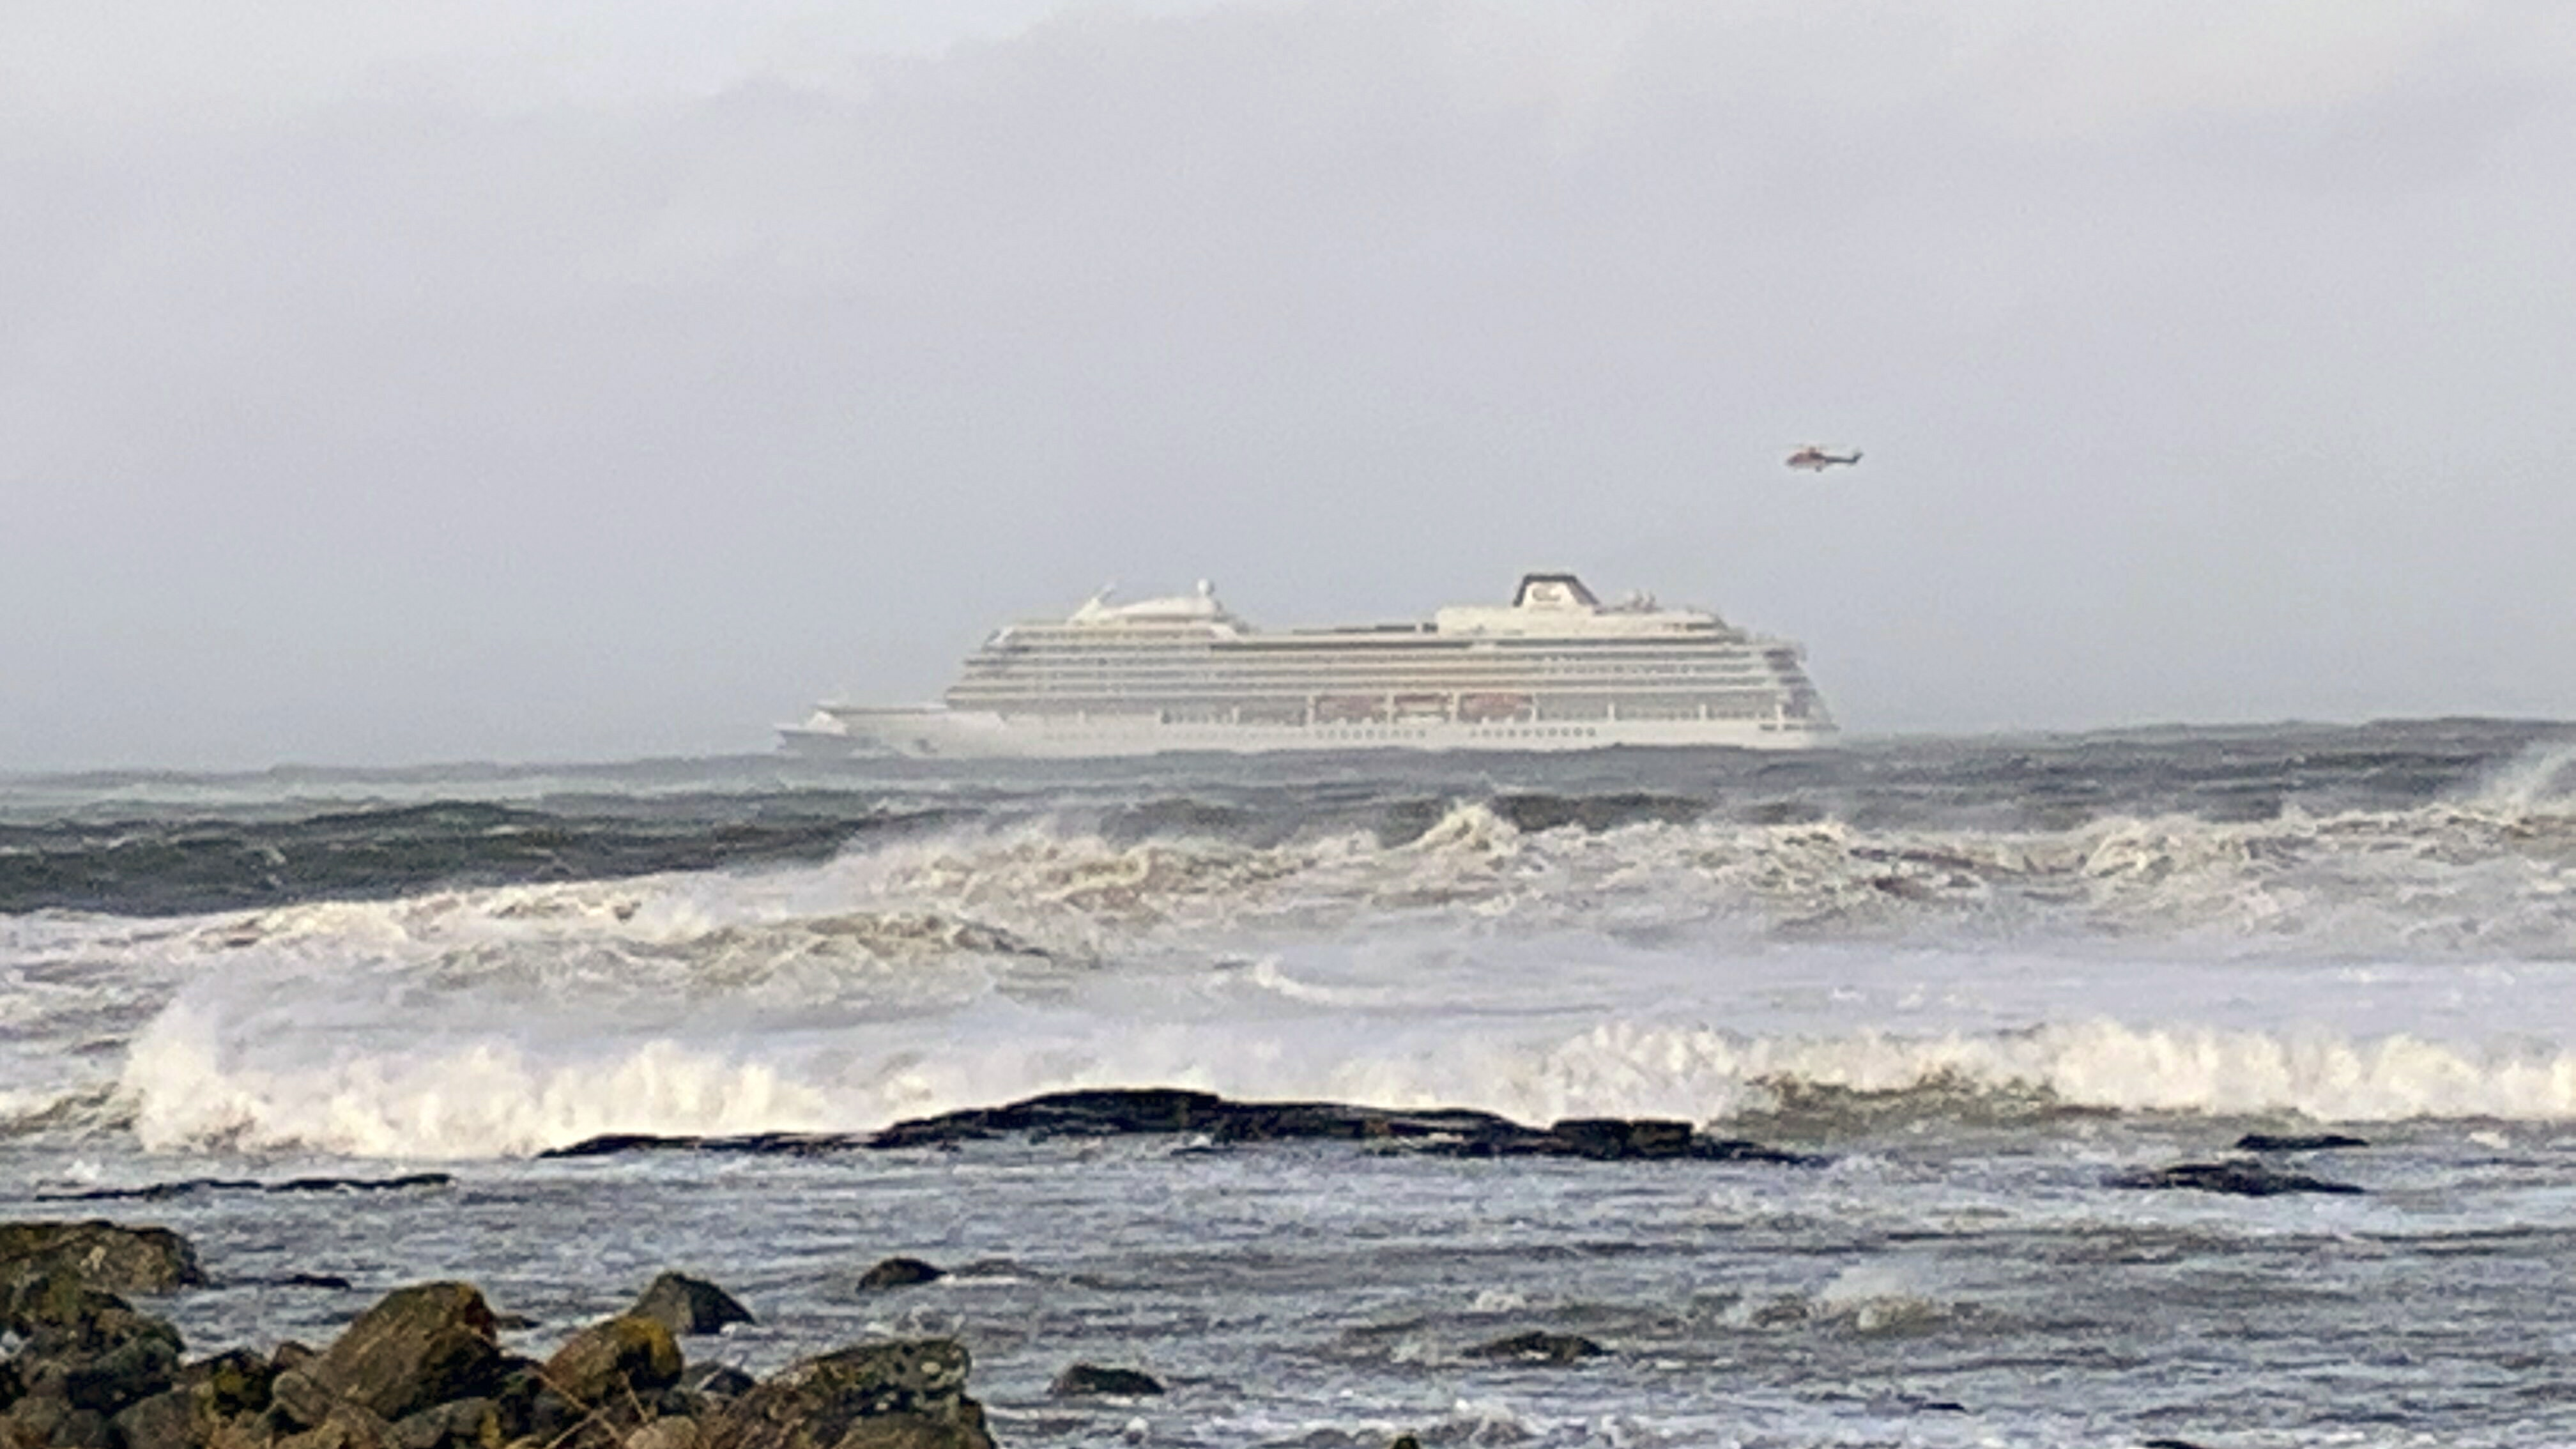 1300 evacuations under way from Norway cruise ship